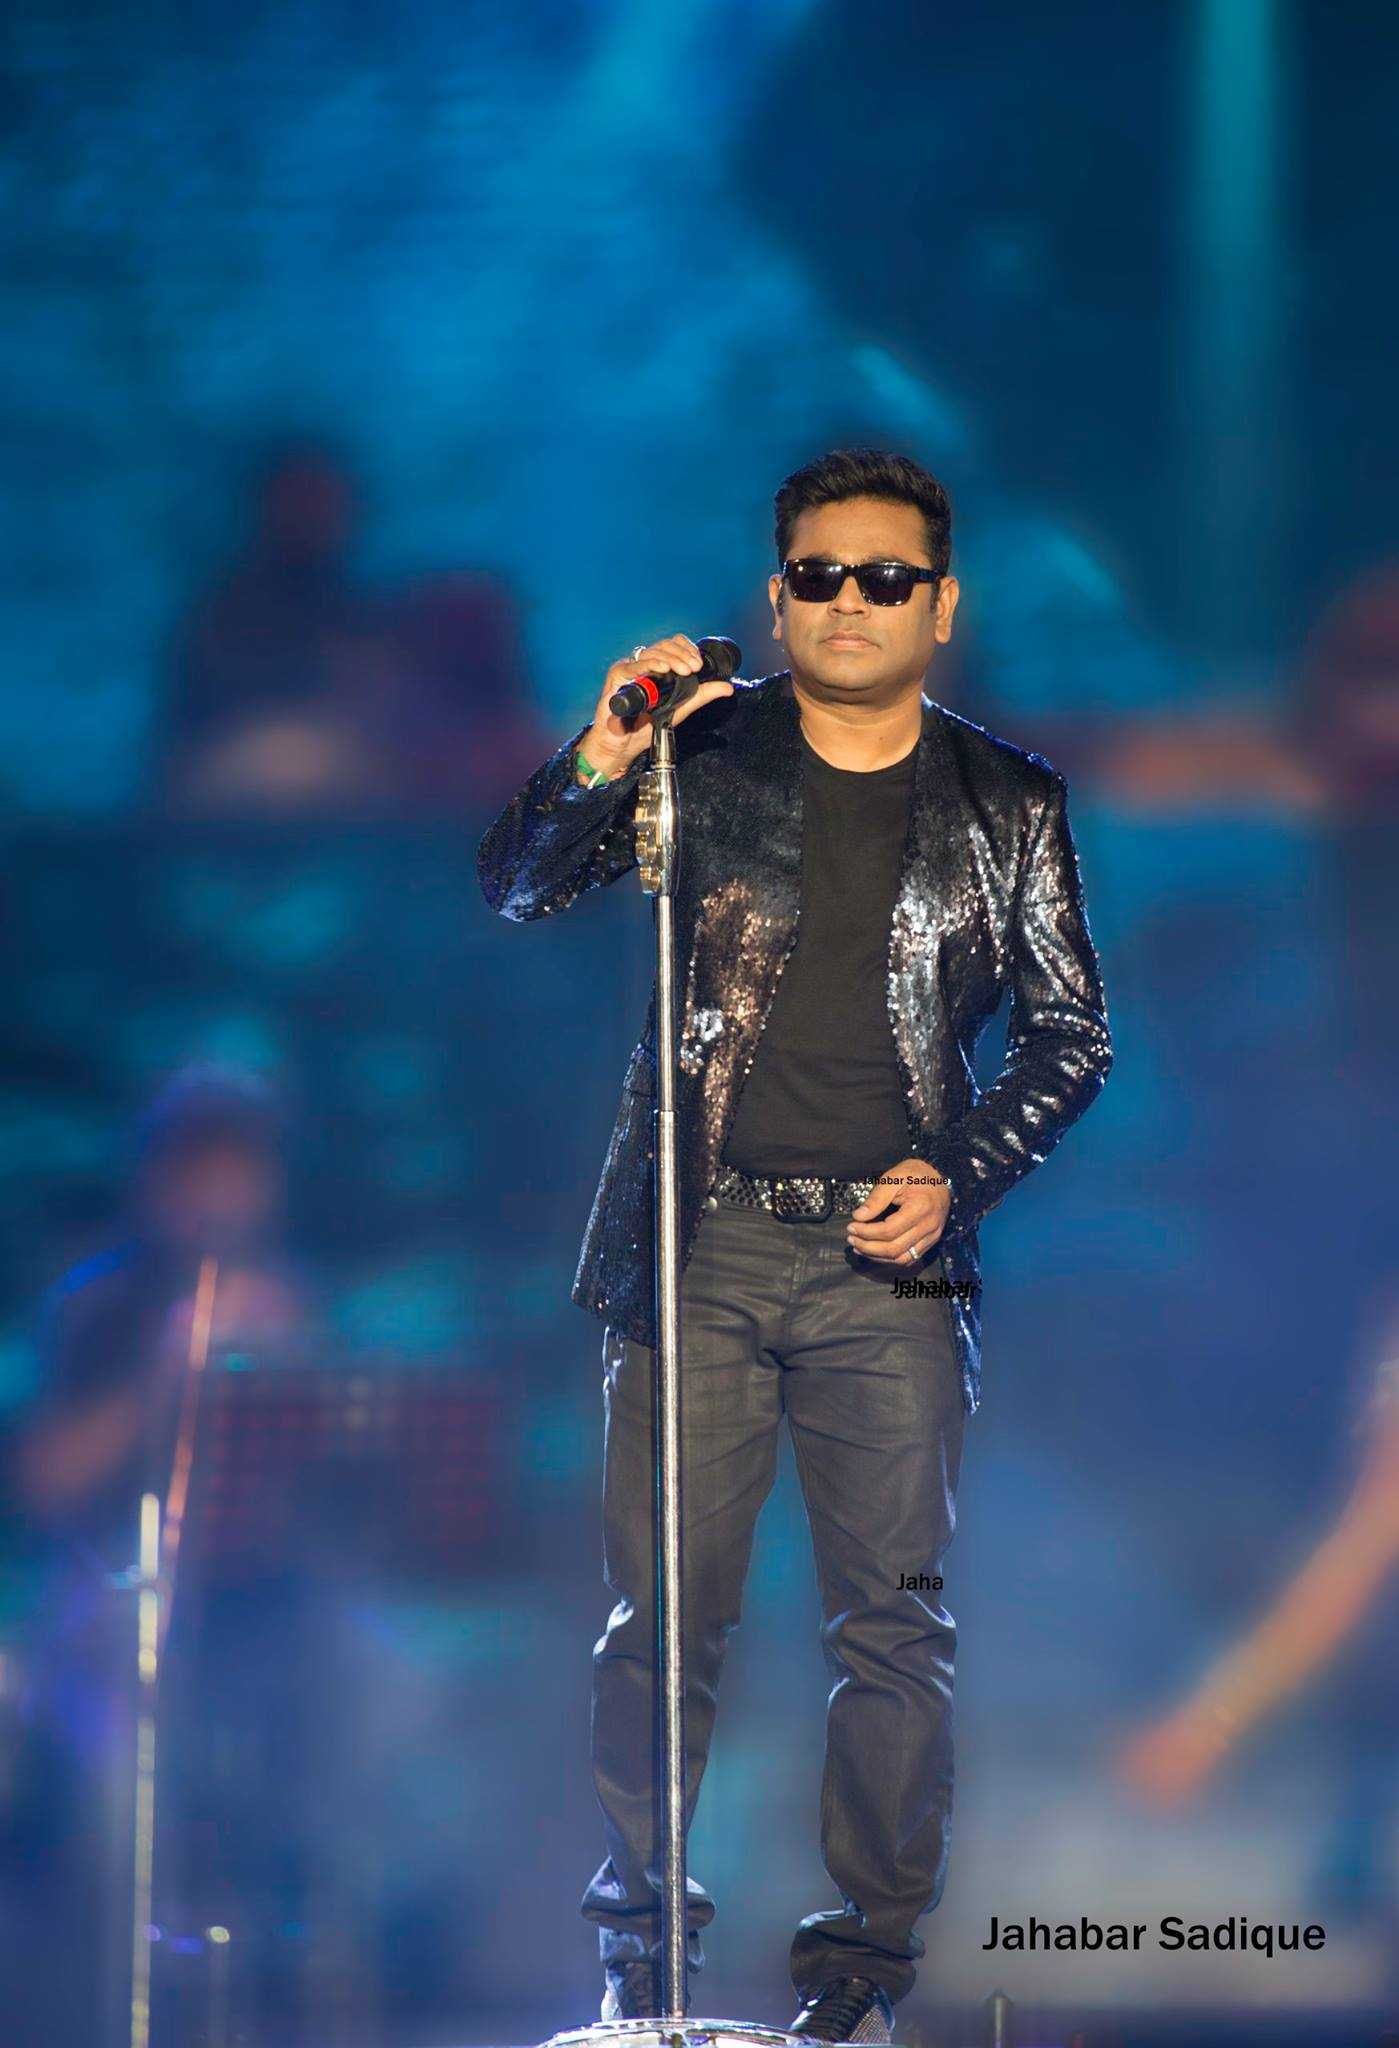 [FLAC] A.R. Rahman – The Ultimate Audiophile Collection-DTOne | G- Drive | Single Zip |